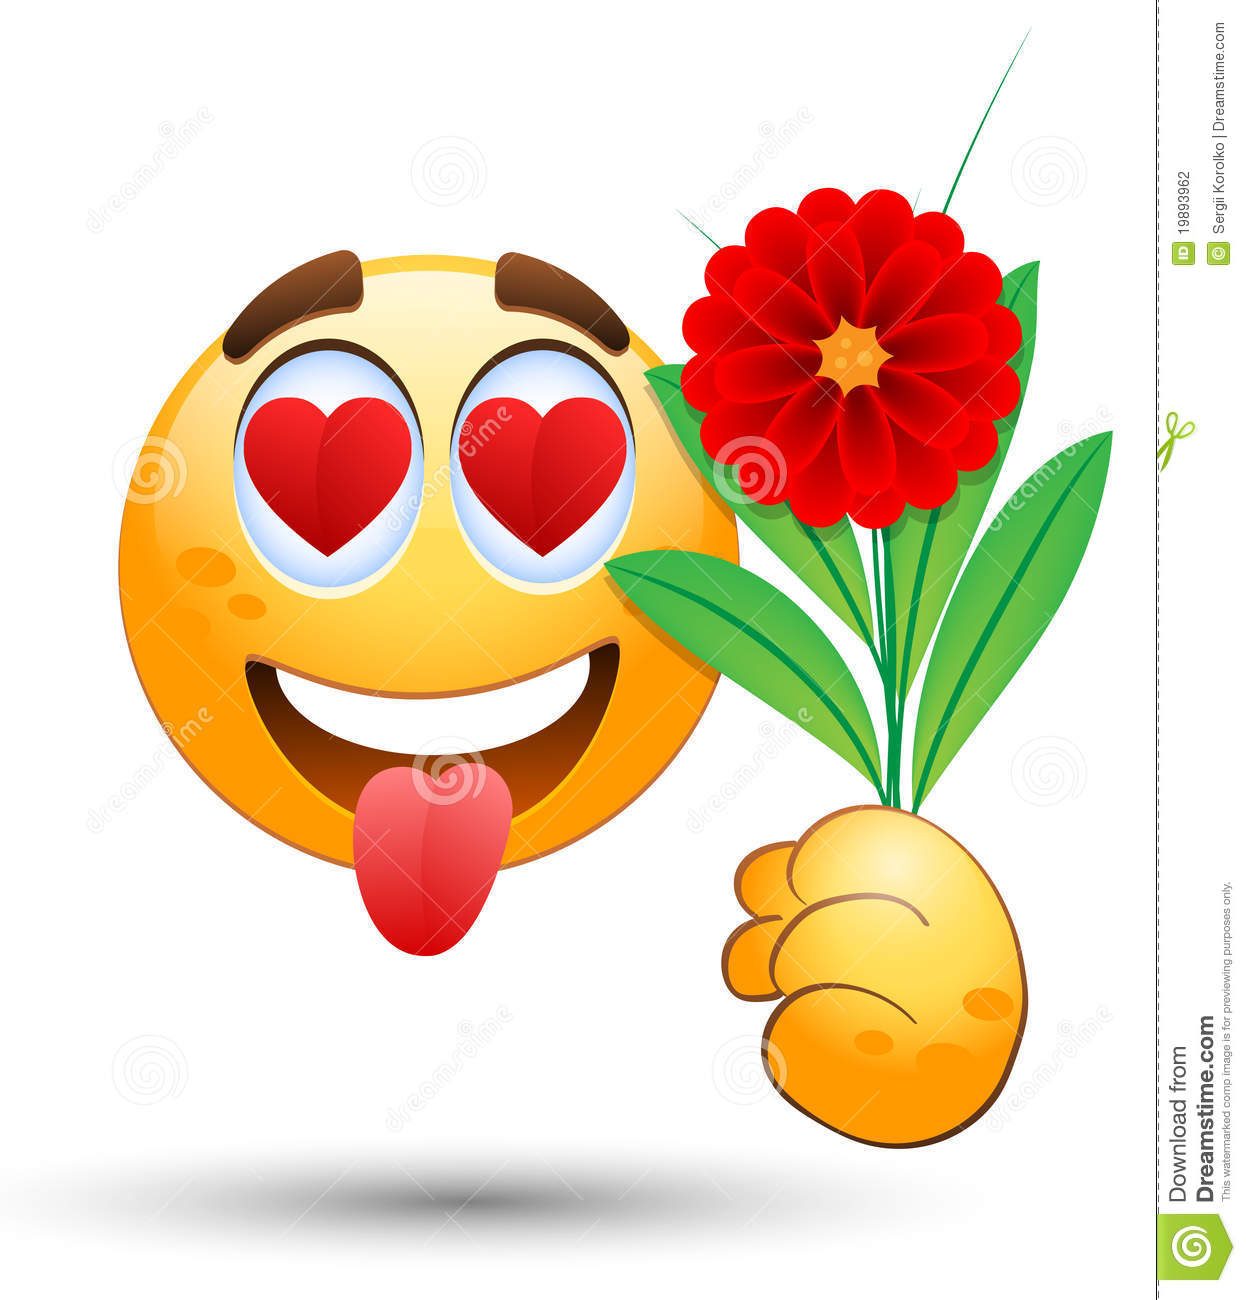 Mazzo Di Fiori Emoticon.Smiling Face With Bunch Of Flowers In The Hand Stock Vector